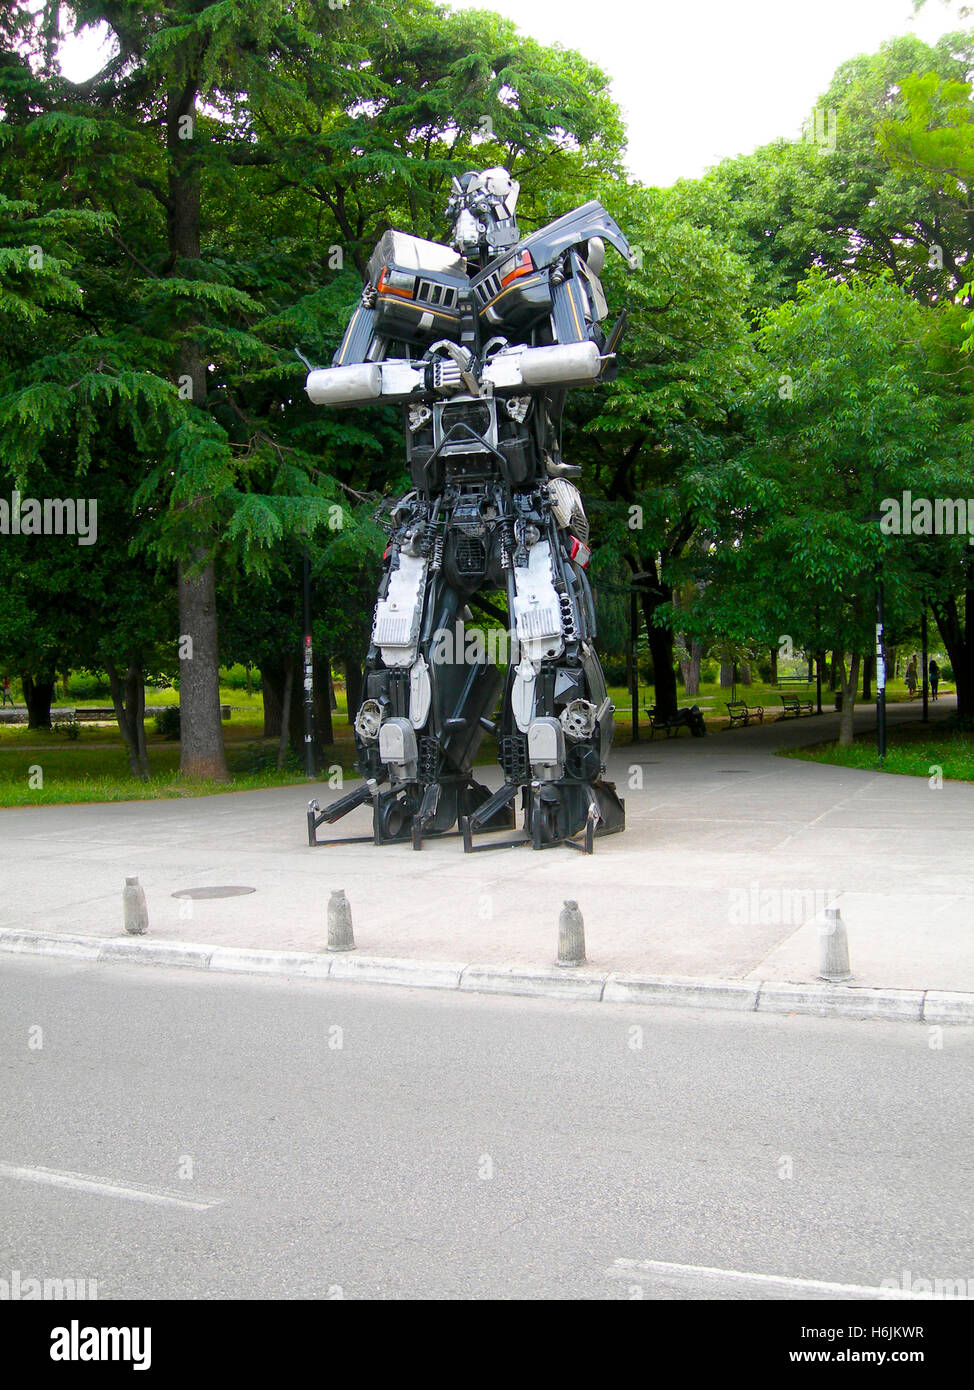 PODGORICA, MONTENEGRO-May 15: Transformer sculpture art made of automobile parts is seen at exhibitTransformers Stock Photo